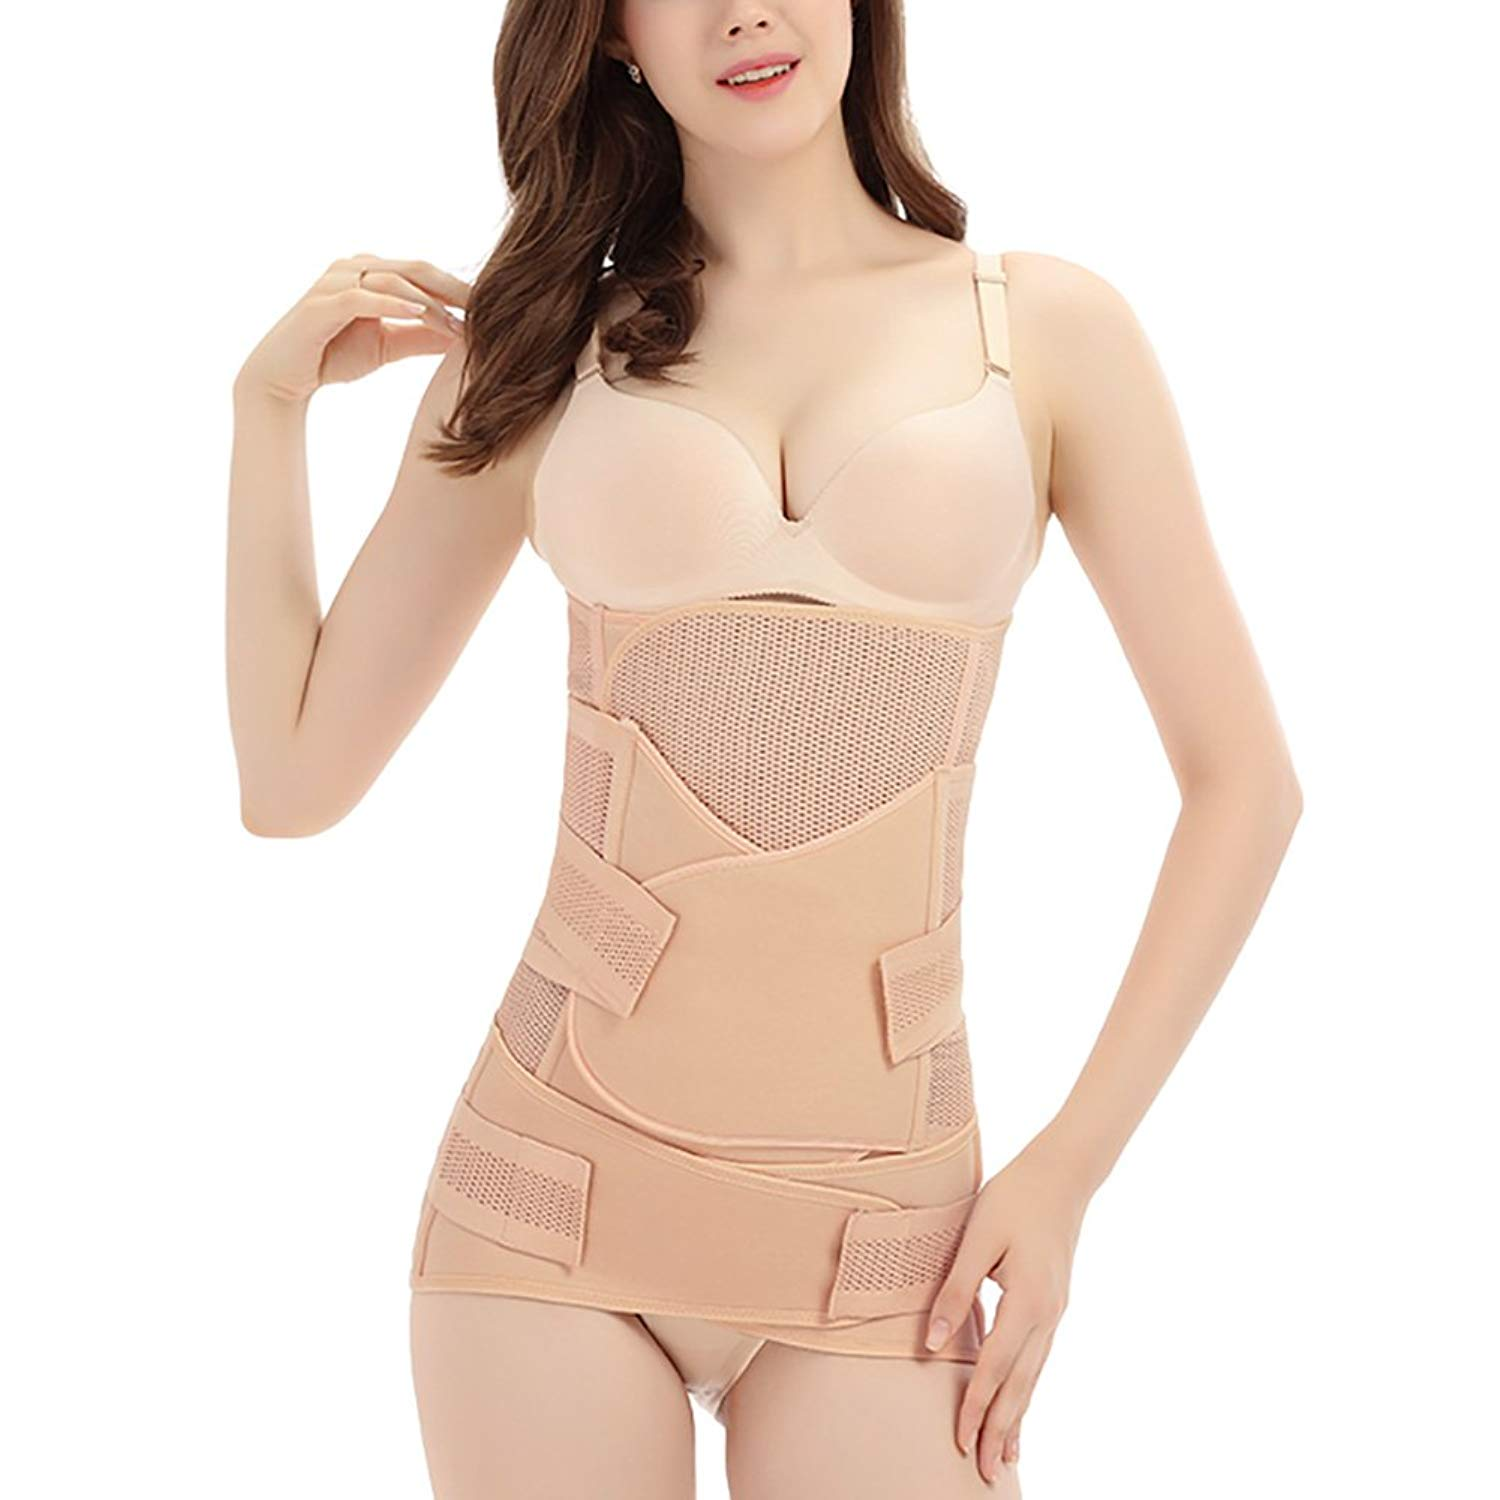 495a508a517 Get Quotations · Women Postpartum C-section Maternity Recovery Belly Band  Support Belt Wrap Girdle Body Shaper